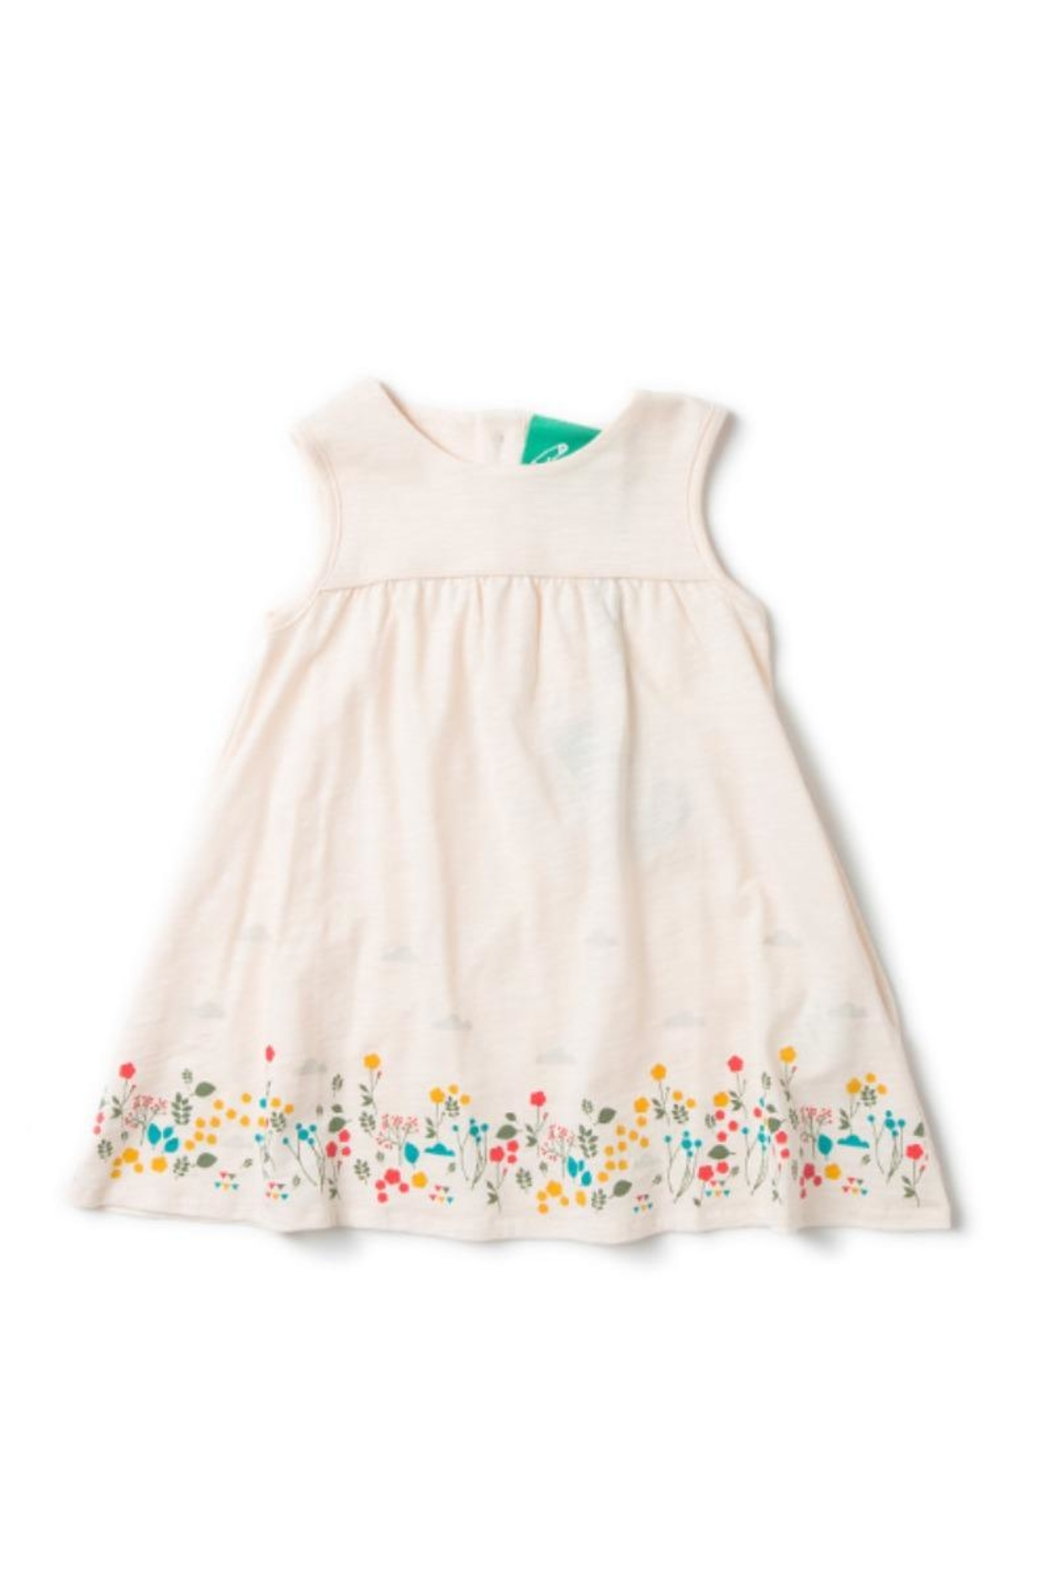 Little Green Radicals Botanical Storytime Dress - Front Cropped Image